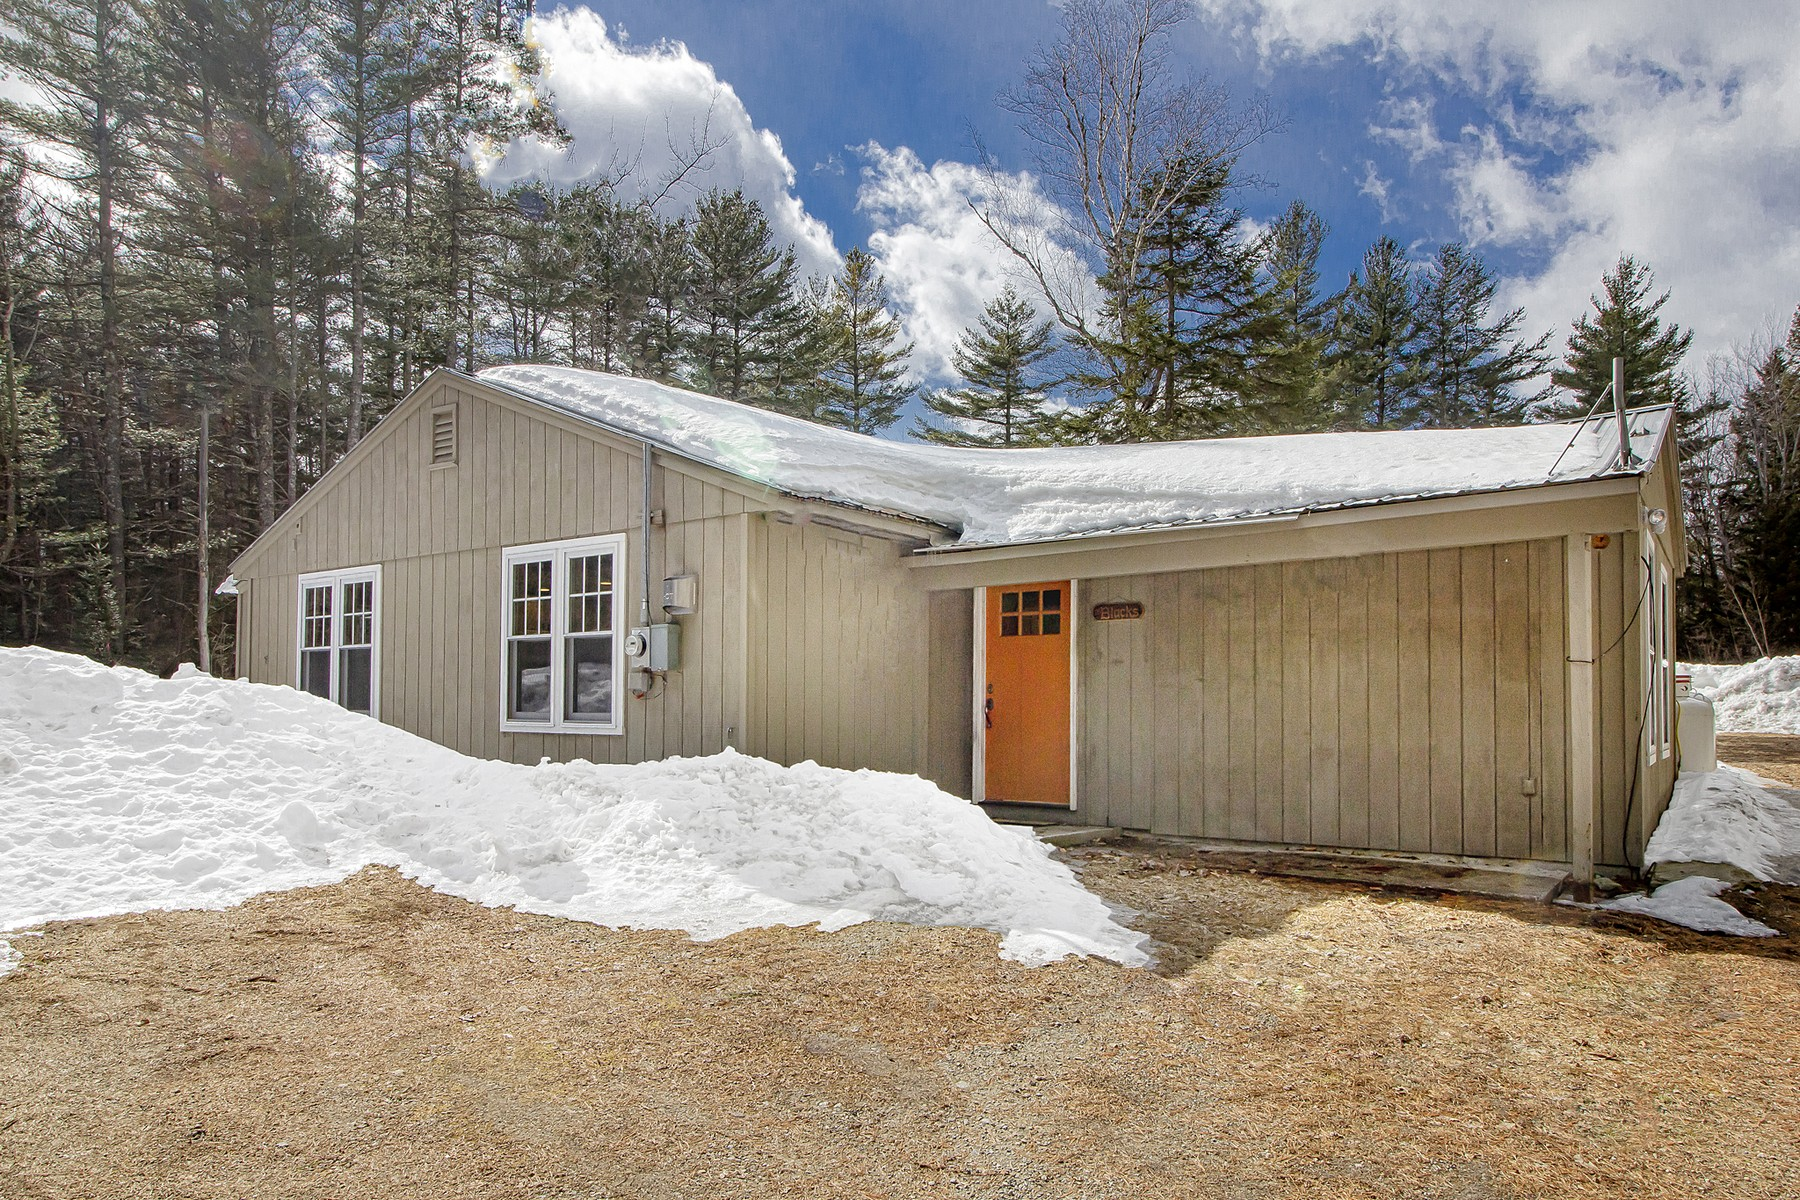 Single Family Home for Sale at Cozy and New 177 Fay Boyden Rd Wardsboro, Vermont 05360 United States